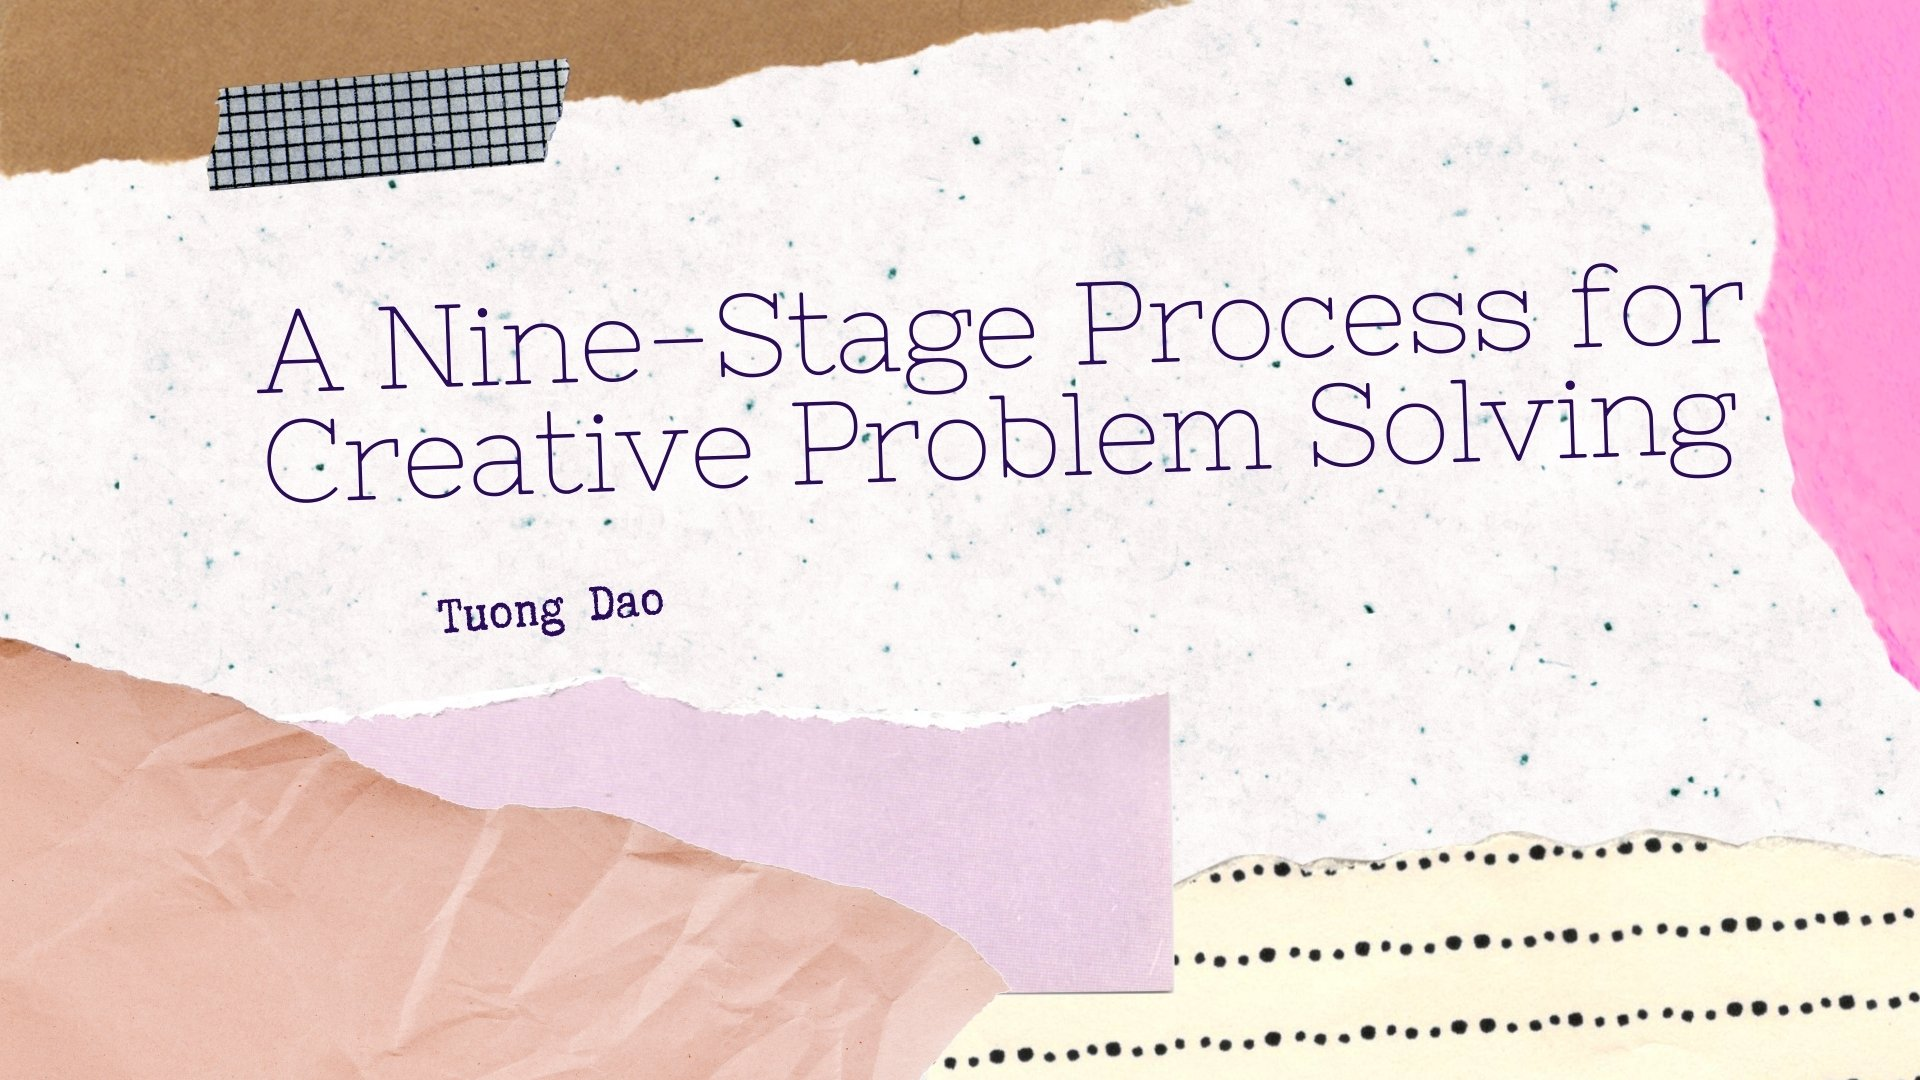 A Nine-Stage Process for Creative Problem Solving